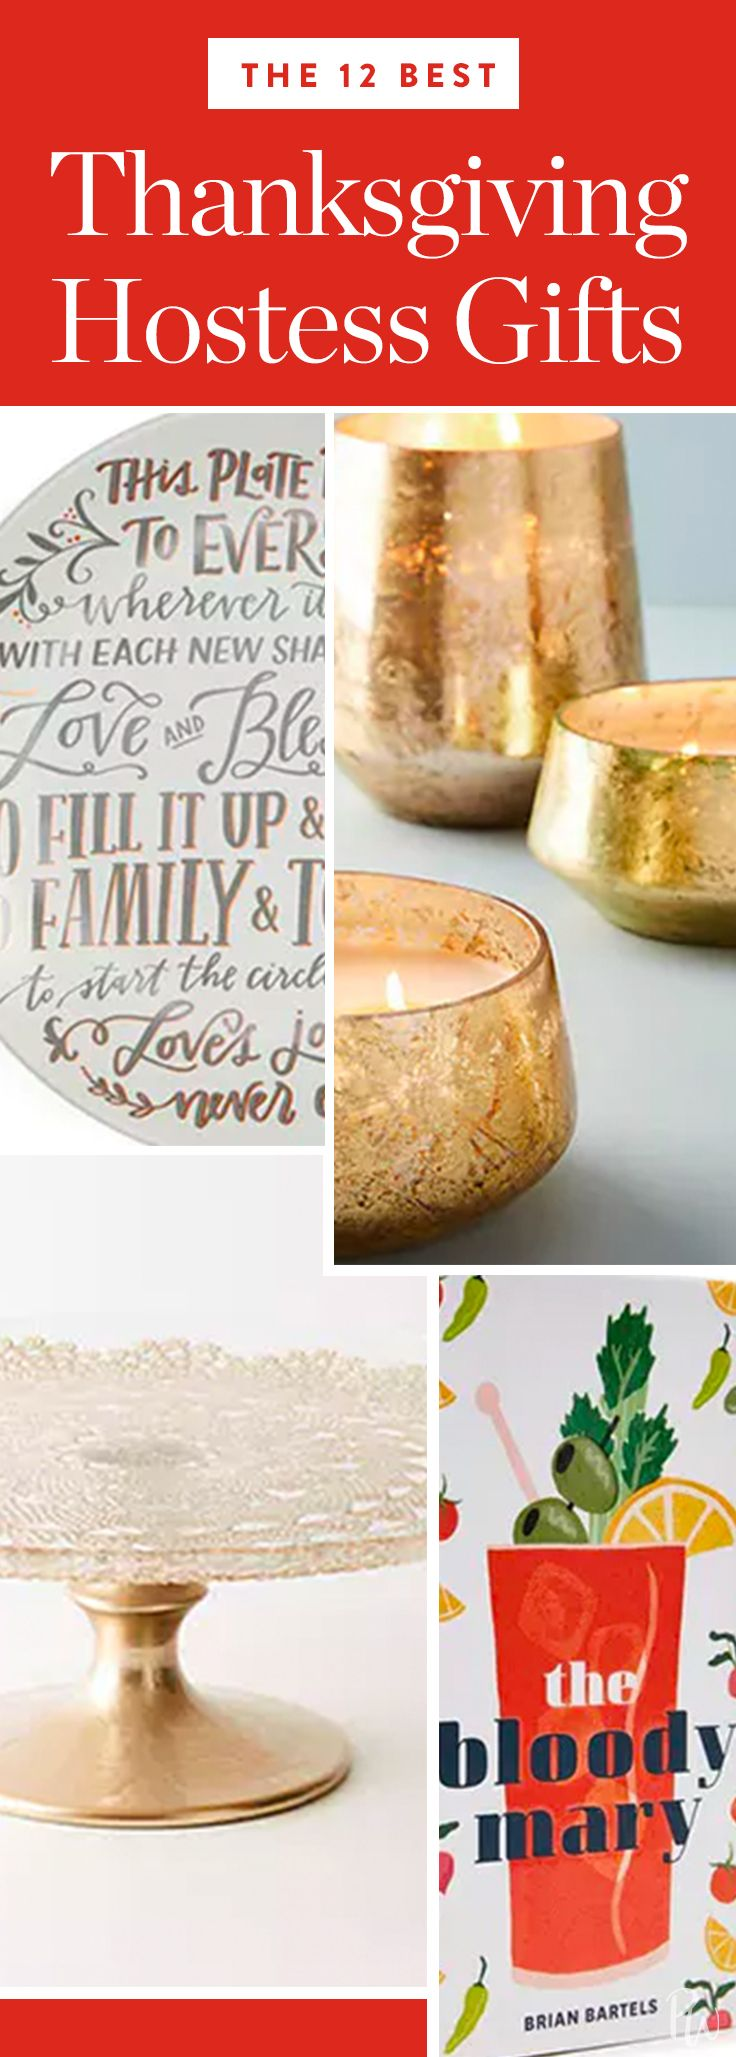 Check out these super thoughtful thanksgiving hostess gifts. #thanksgiving #hostessgifts #giftideas